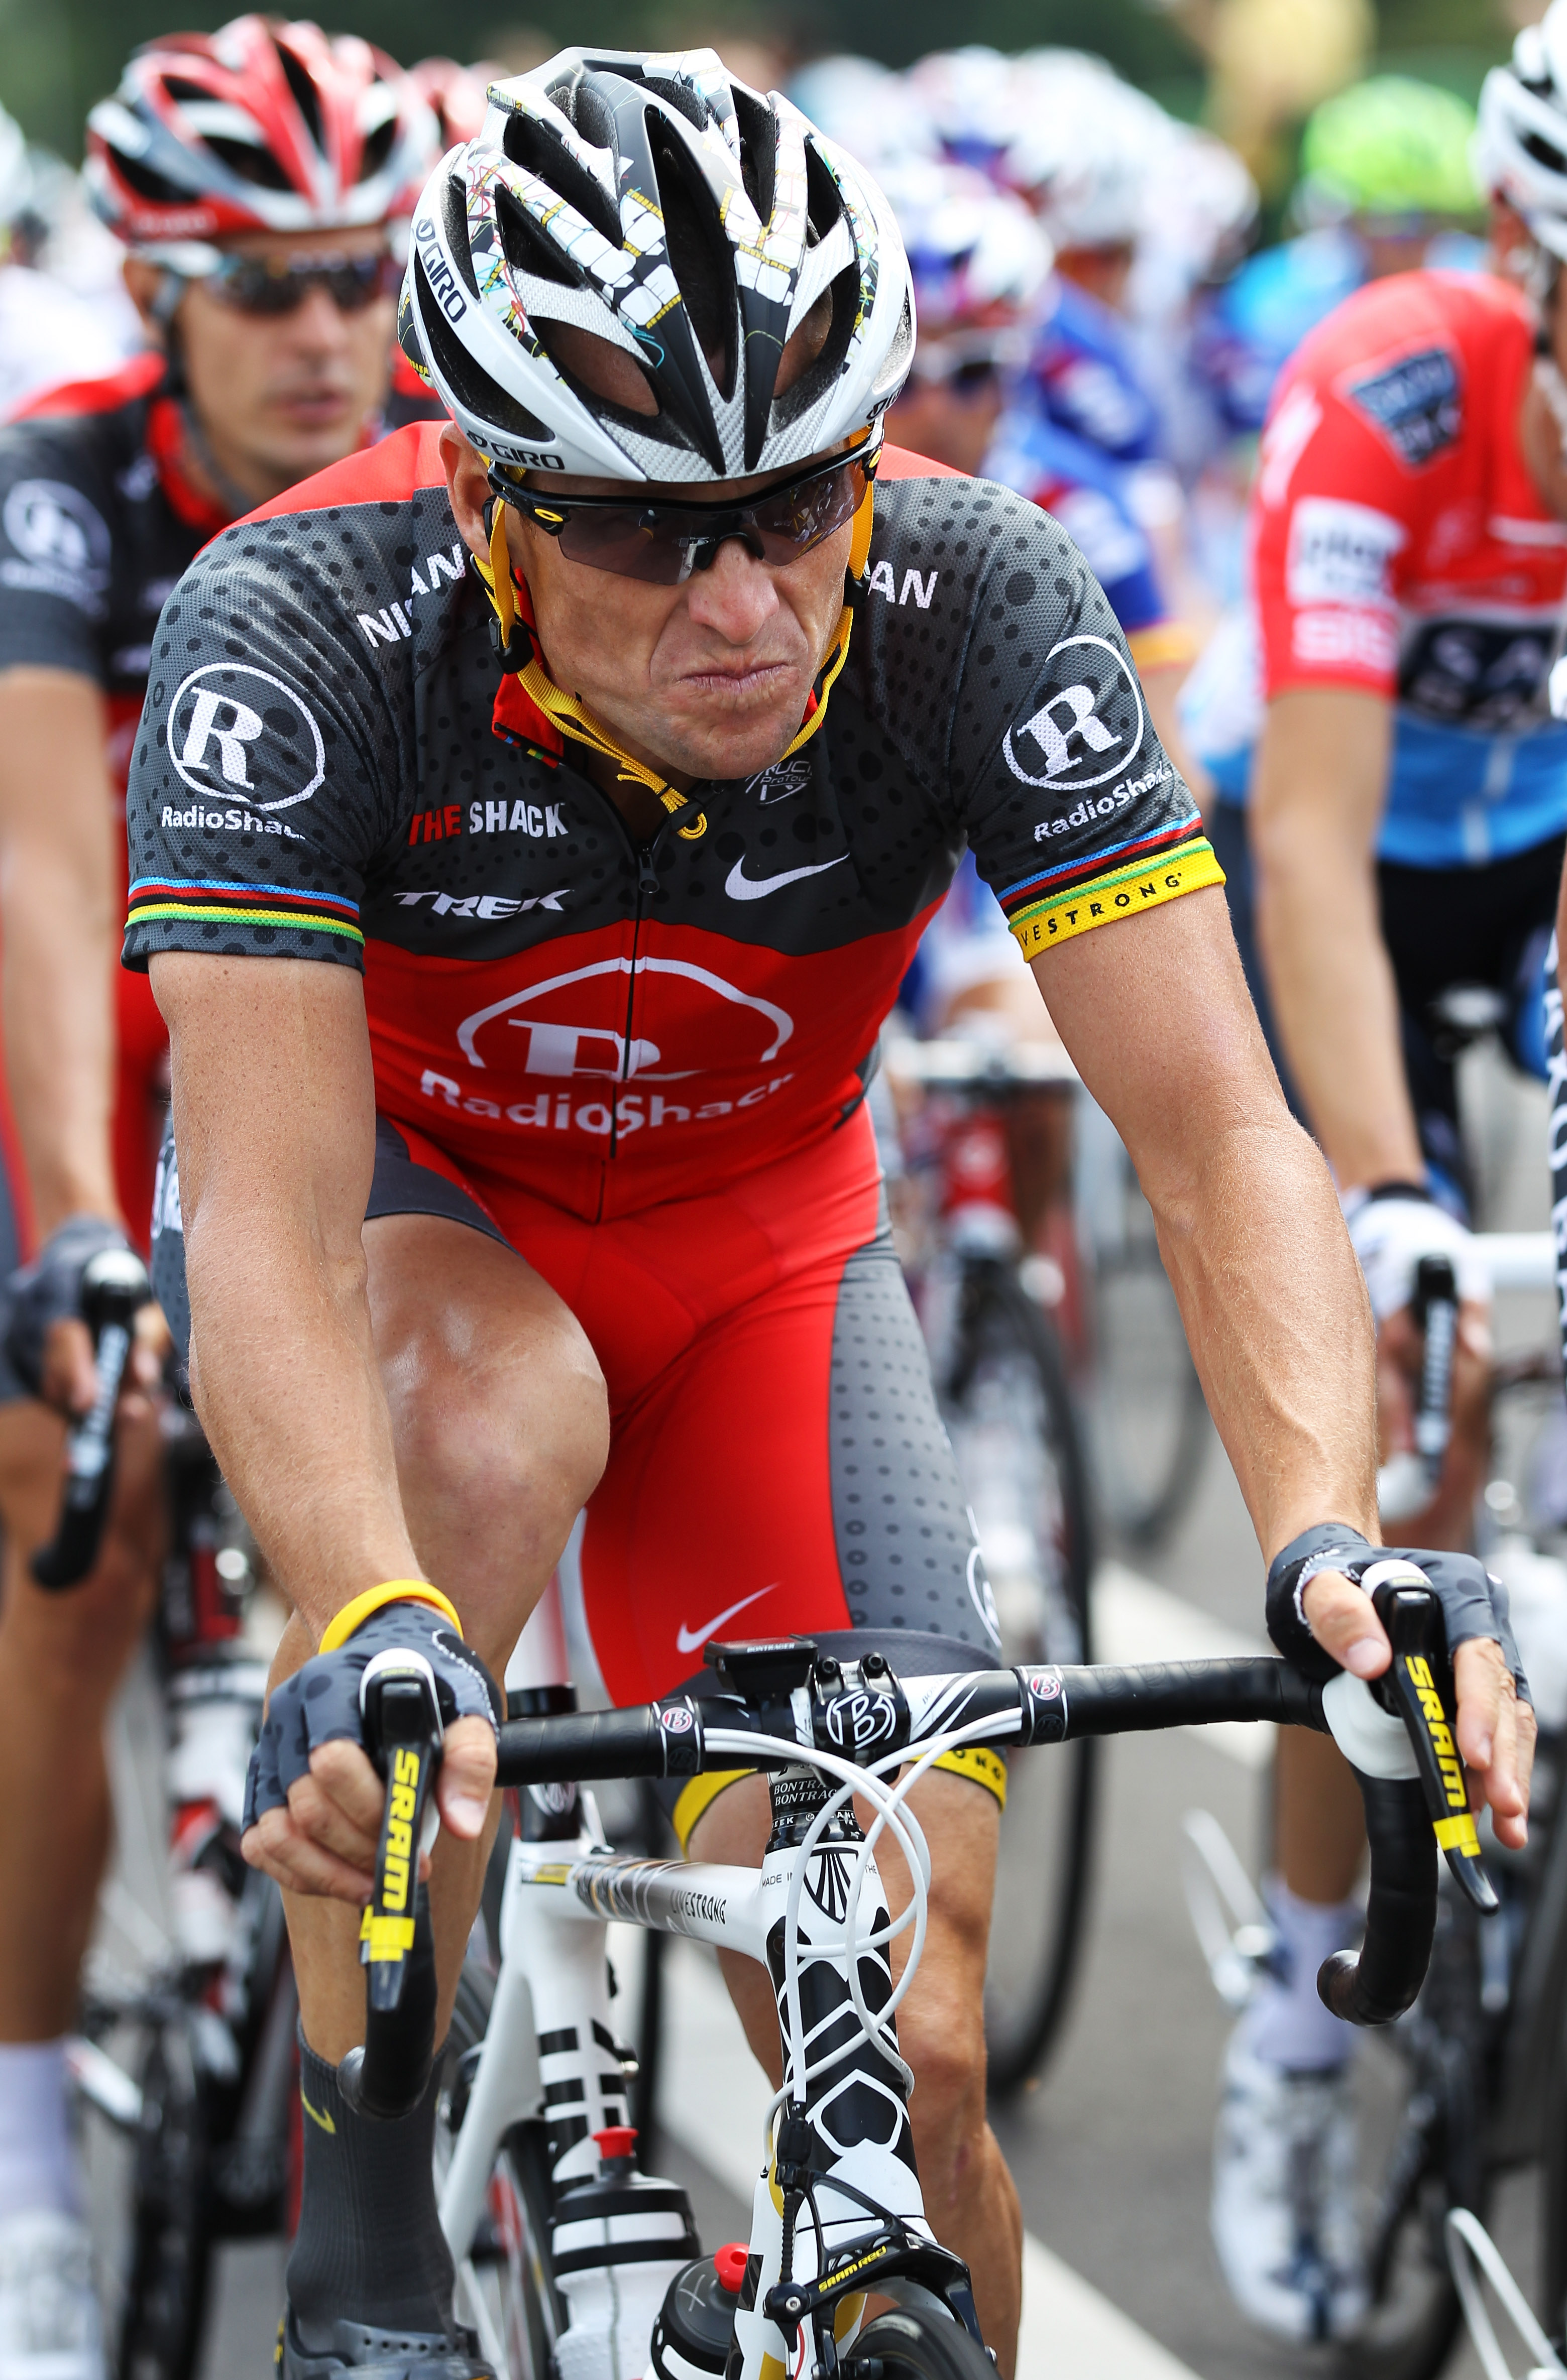 BRUSSELS, BELGIUM - JULY 04:  Lance Armstrong of the USA and Team Radioshack rides in the peloton during stage one of the 2010 Tour de France from Rotterdam to Brussels on July 4, 2010 in Brussels, Belgium.  (Photo by Bryn Lennon/Getty Images)